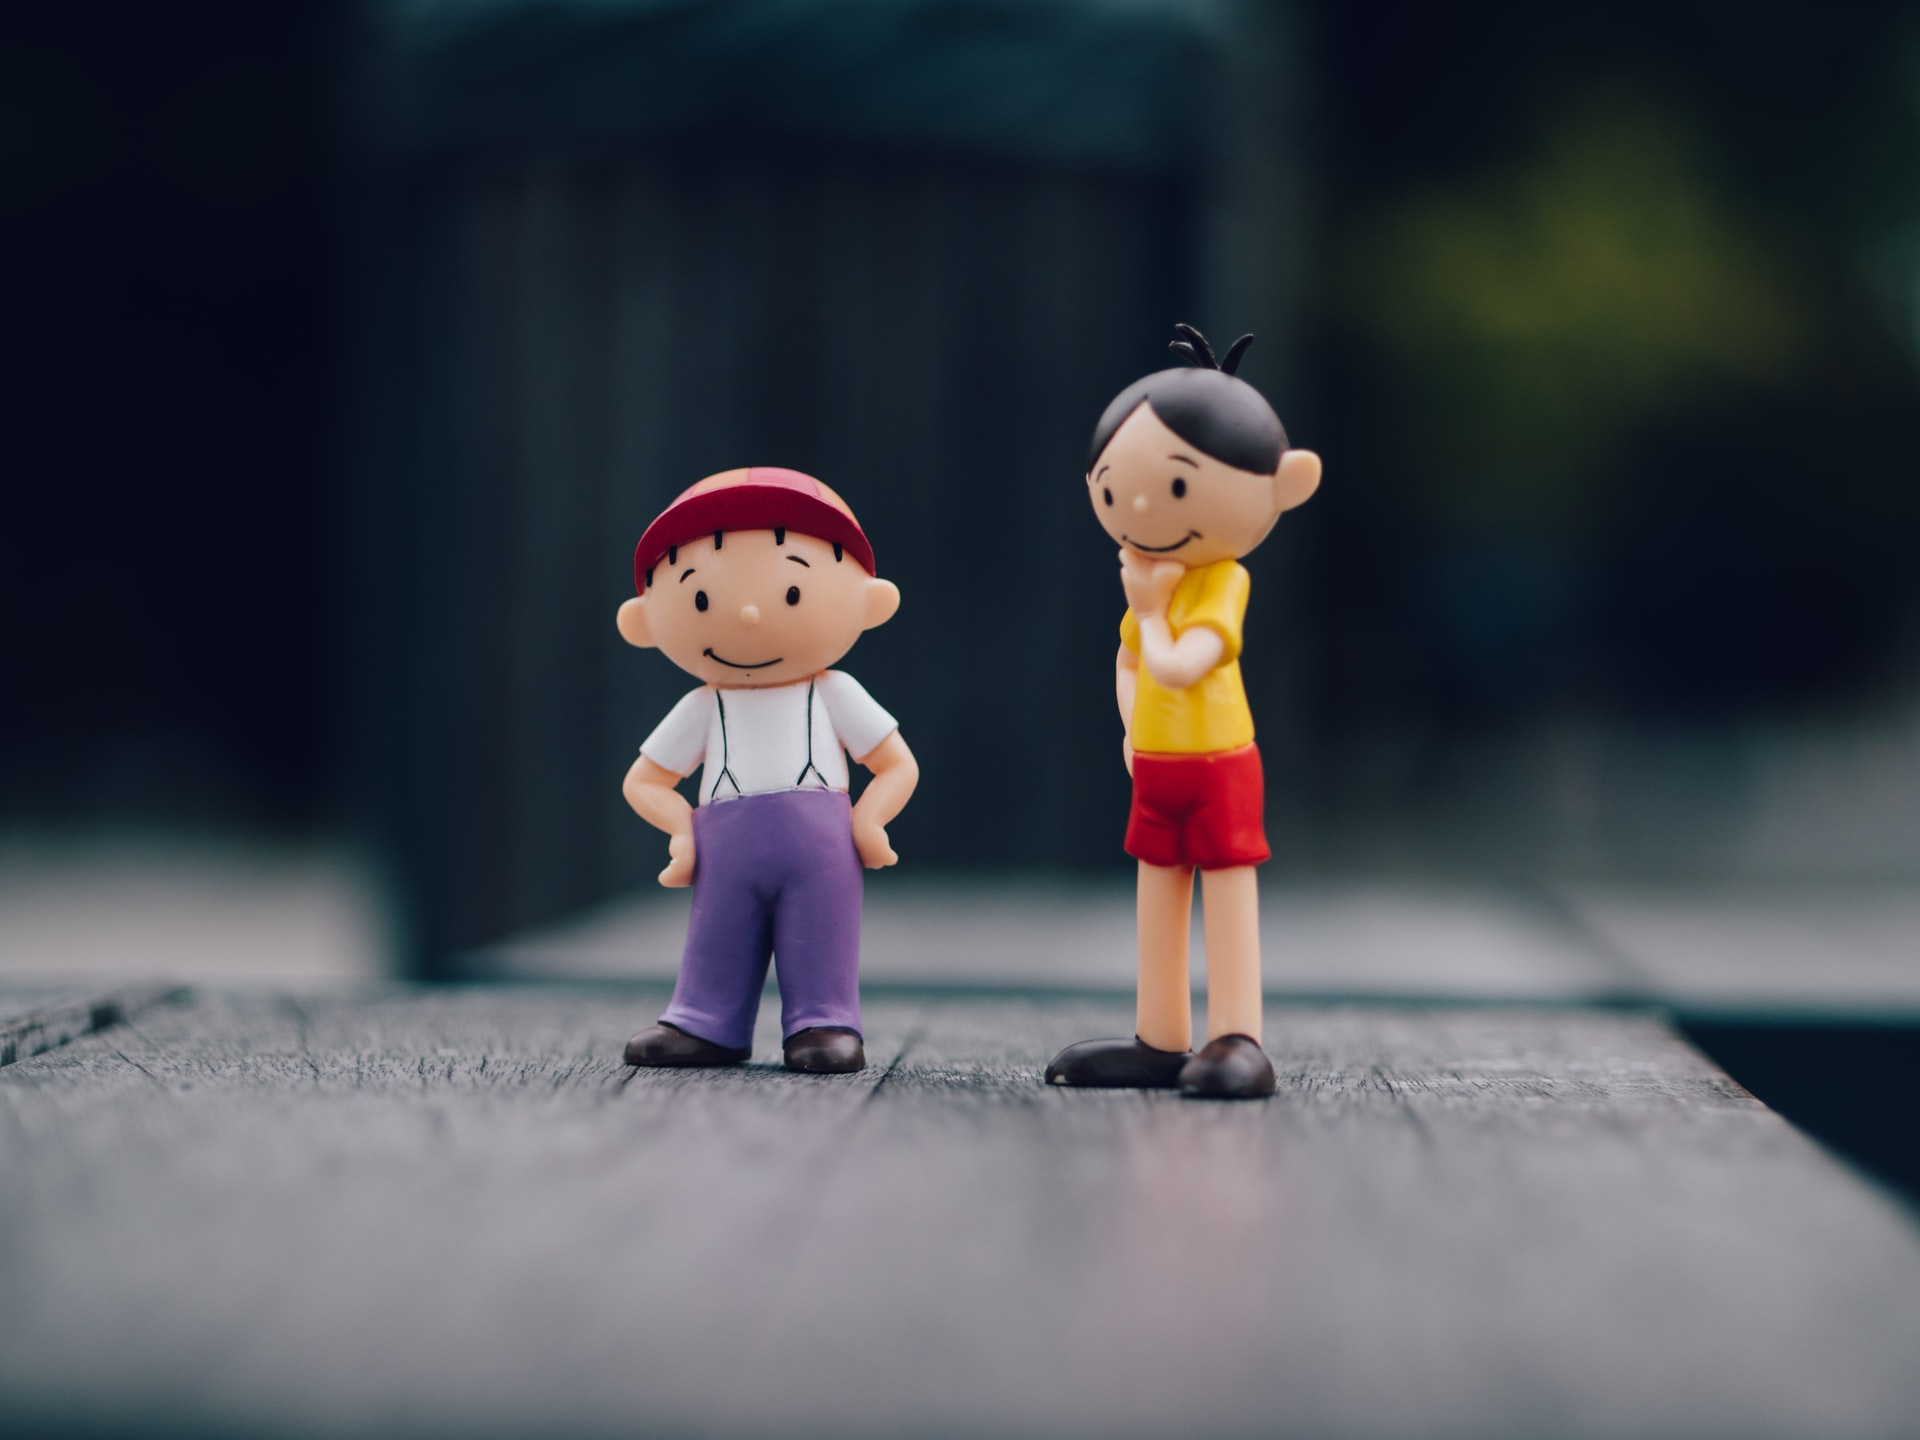 A shallow-focus image of two toy figures standing next to one another